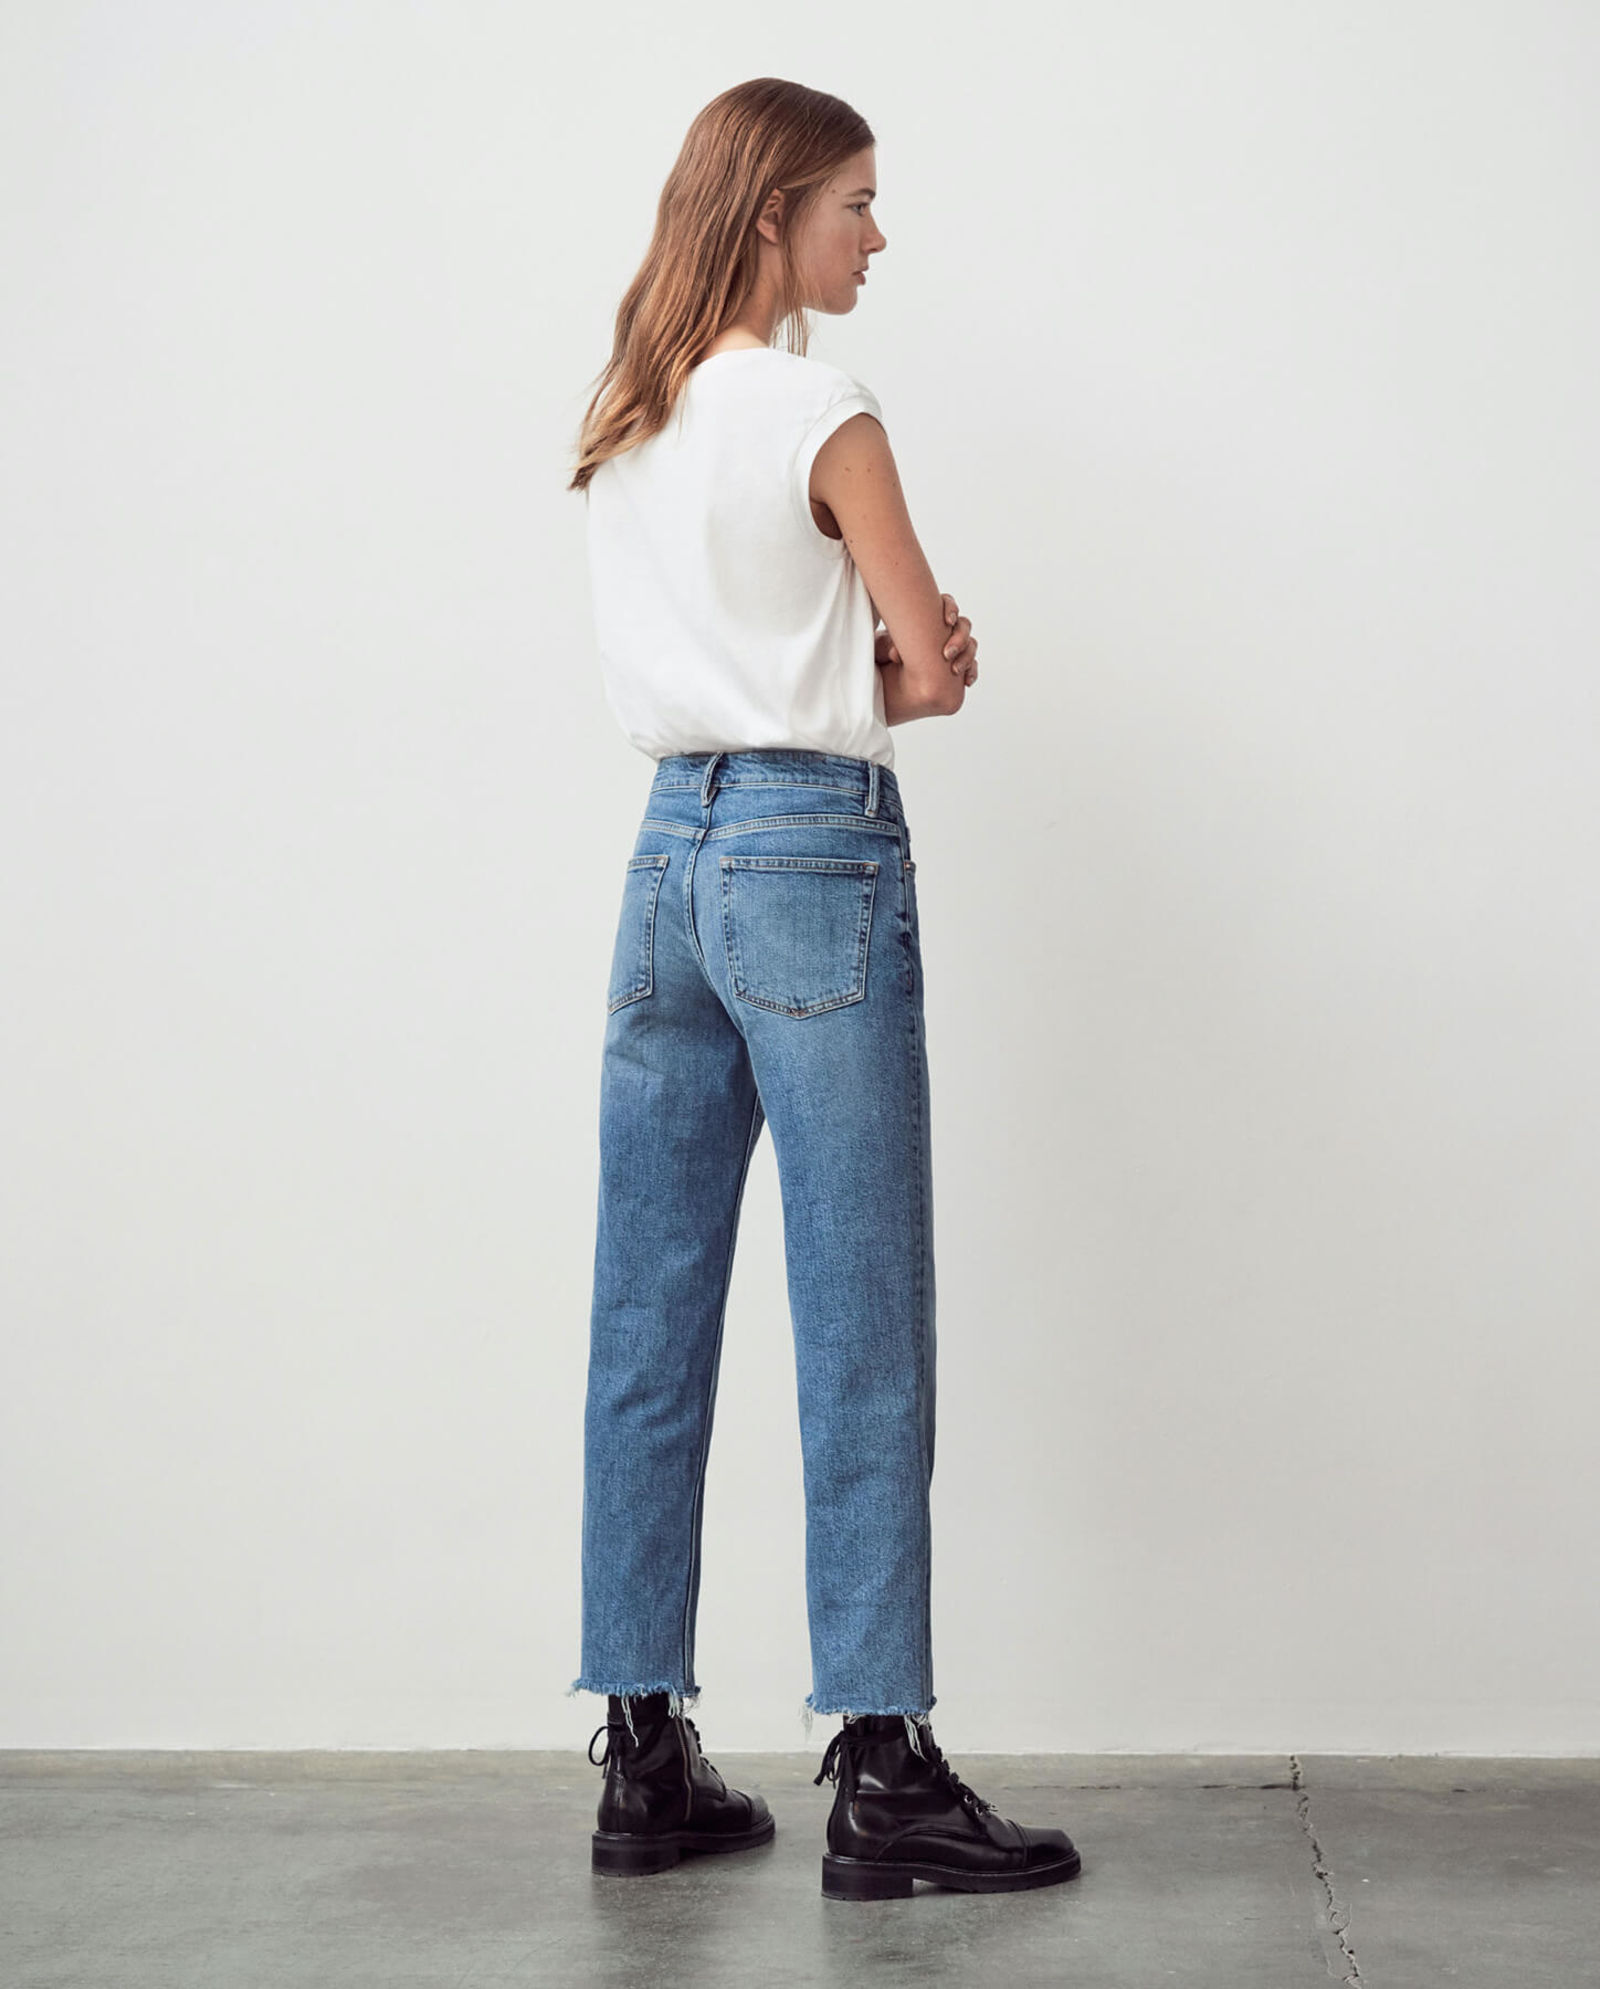 Discover our Harper jeans.